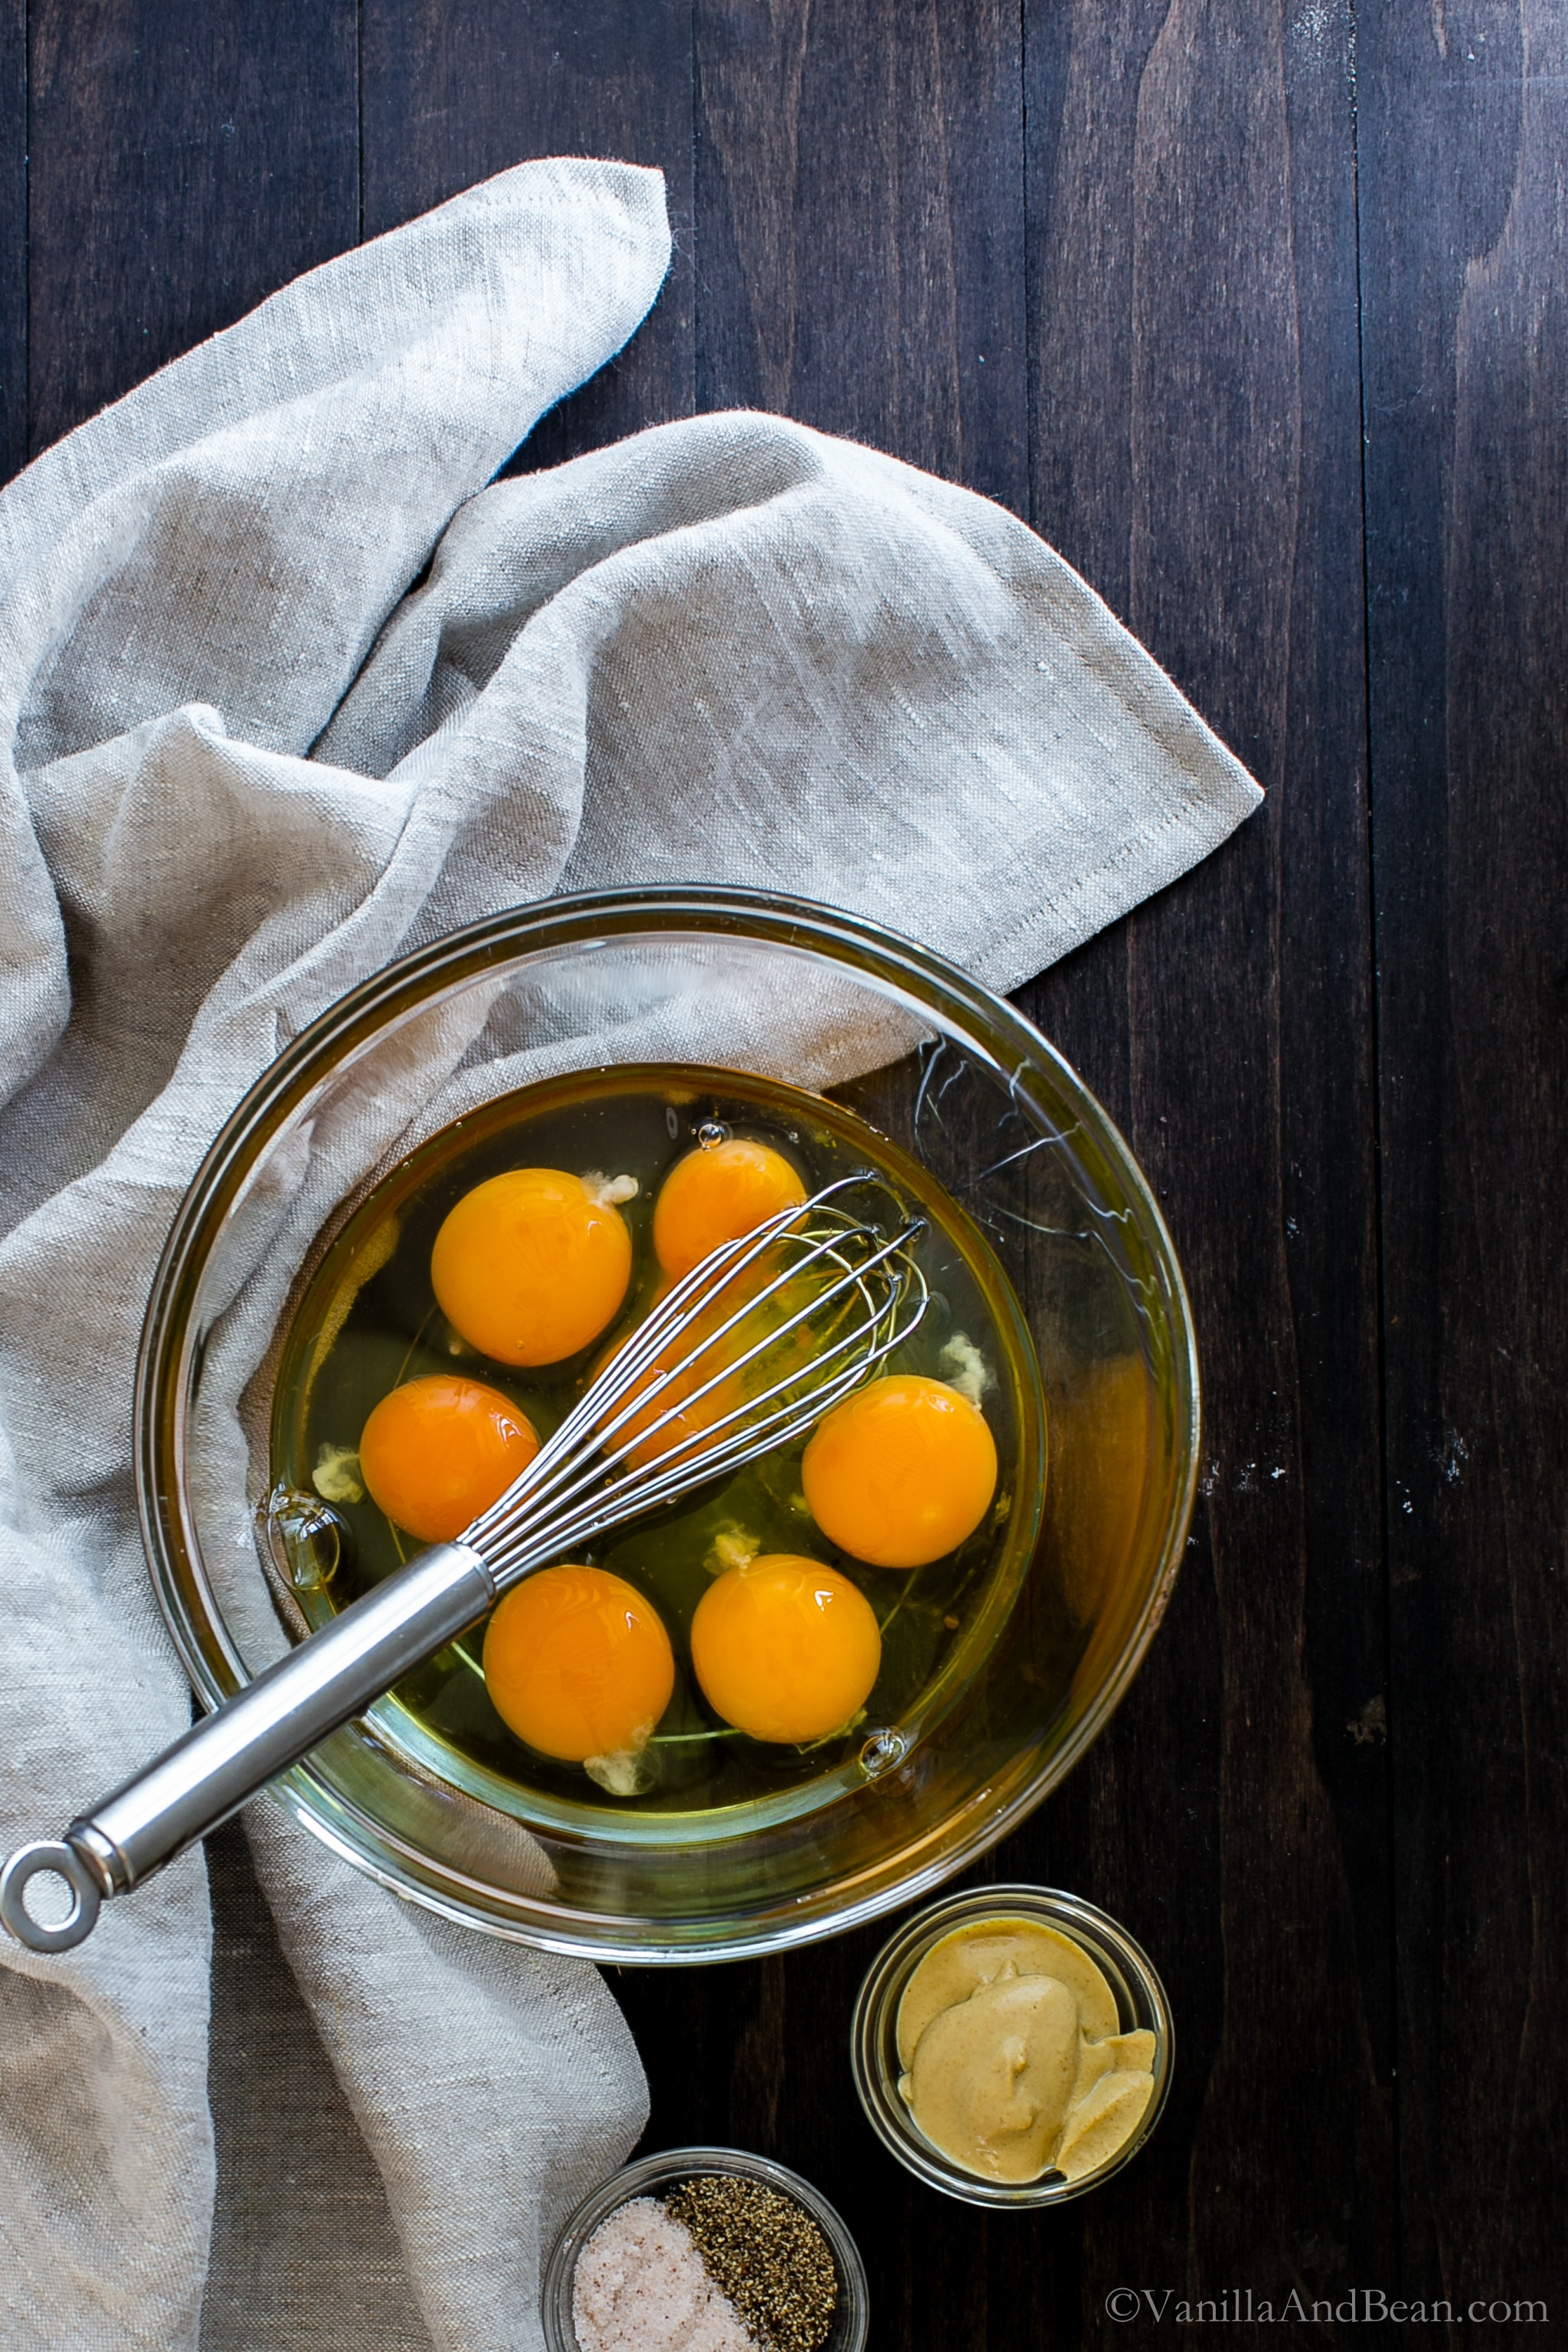 Whisking eggs in a bowl.